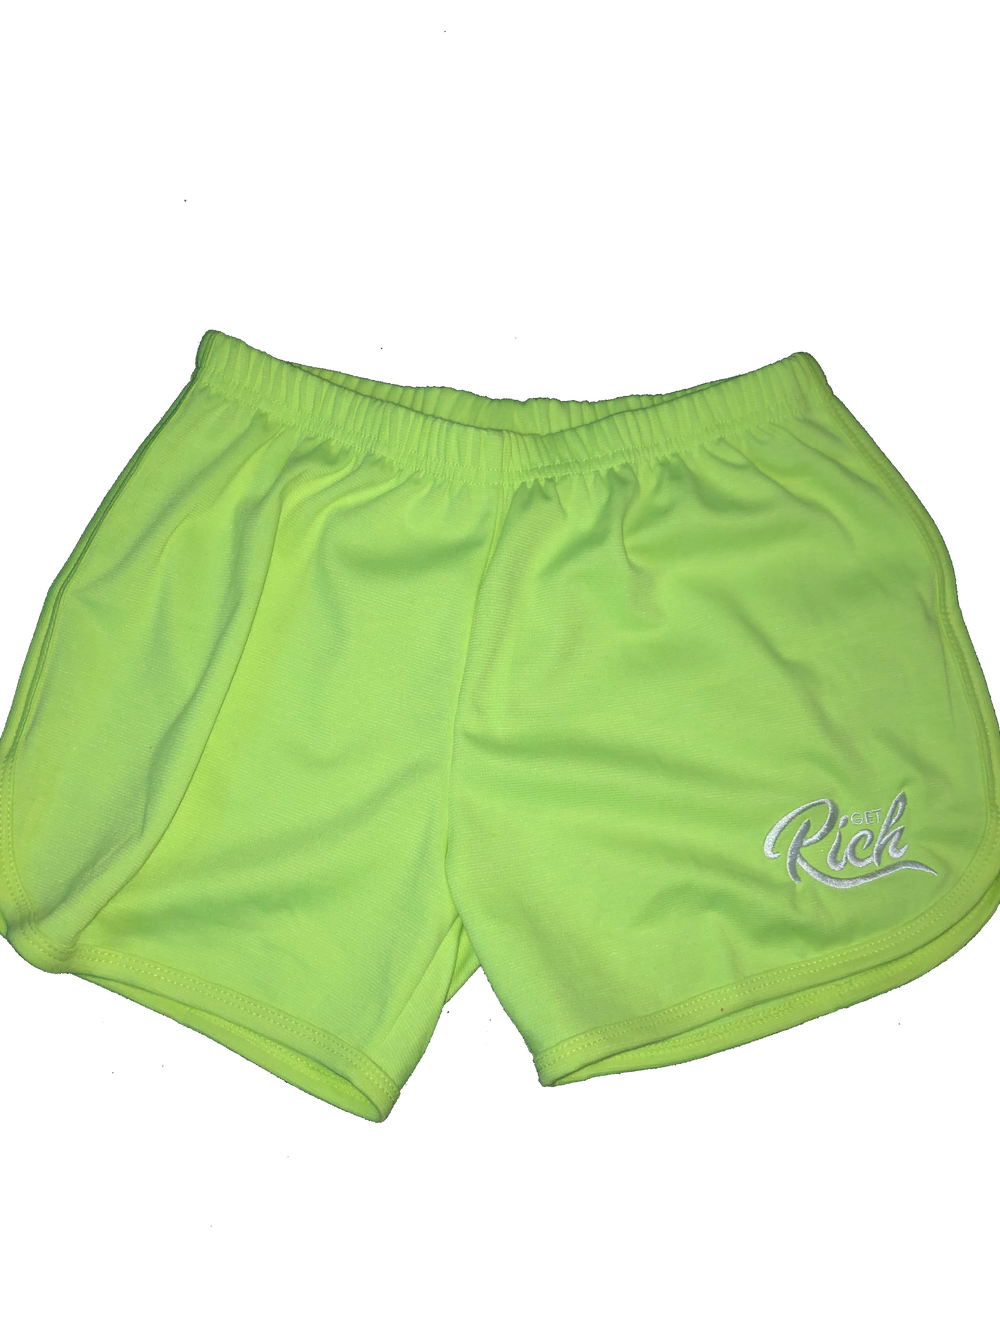 Image of Get Rich - Women's Shorts (Lime Green)